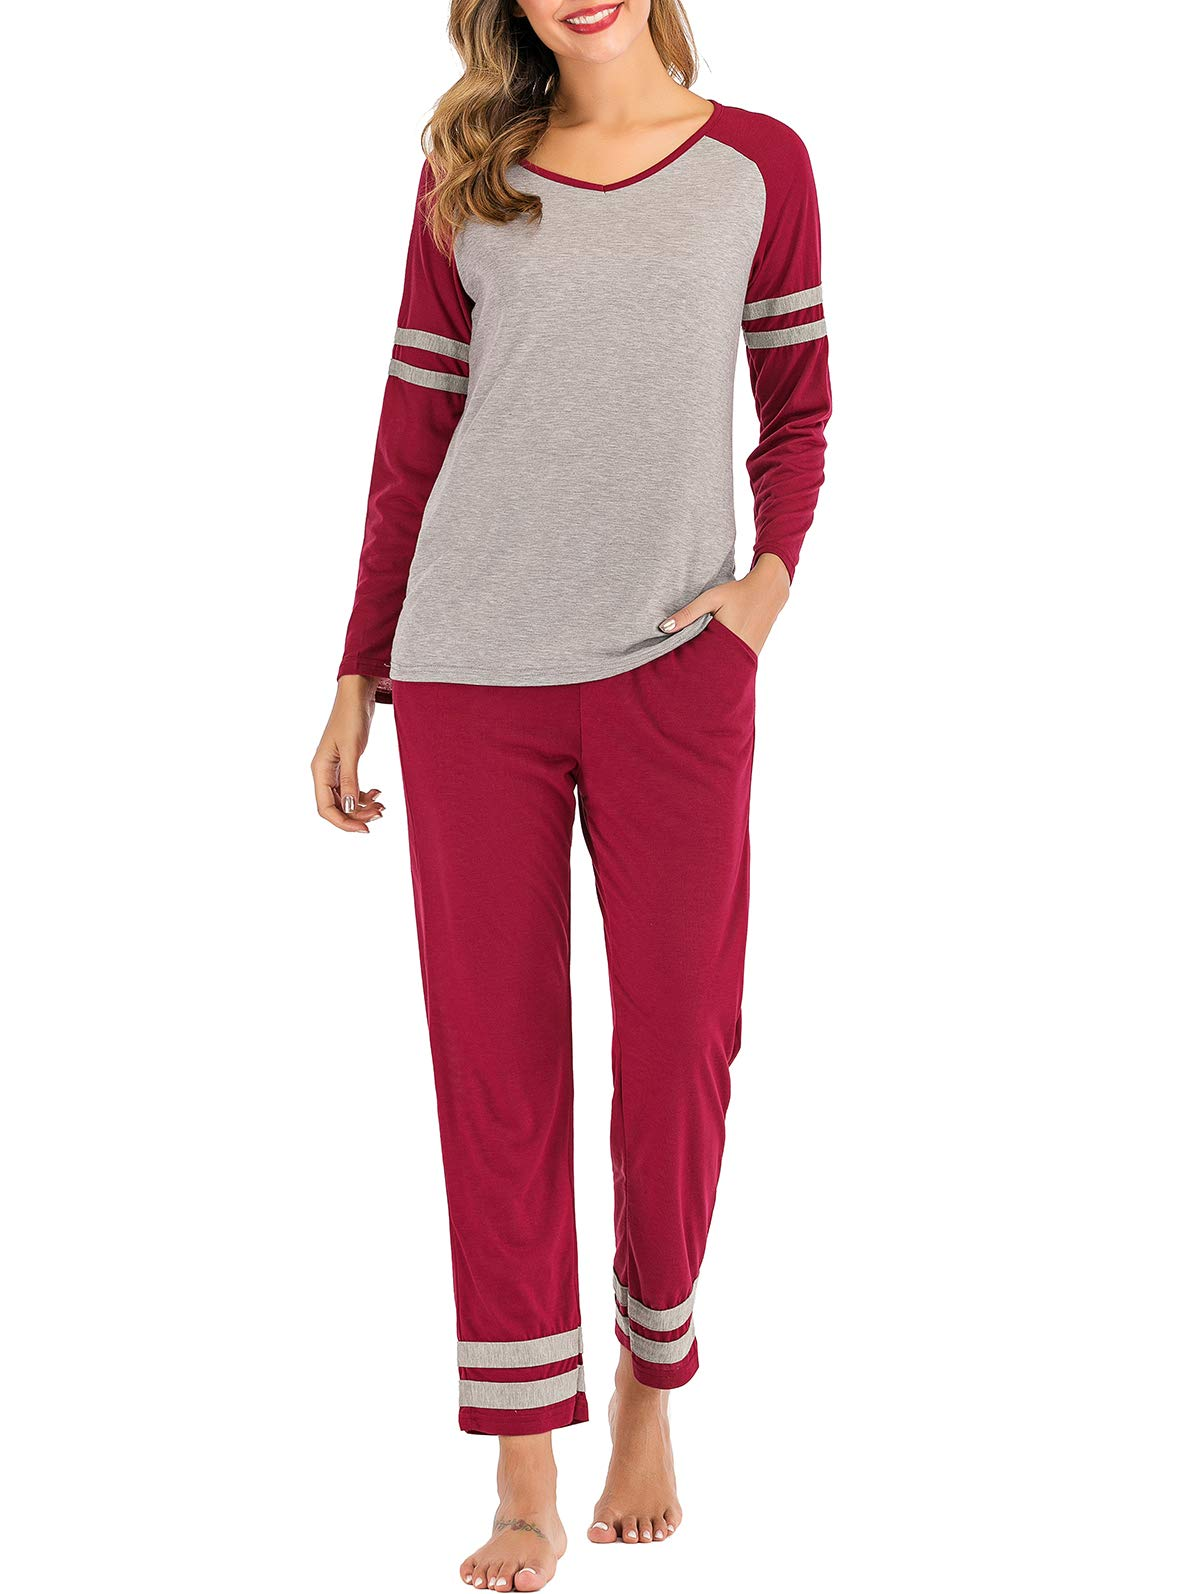 AOVXO Soft Pajama Set for Women Casual V-Neck Long Sleeve Loose Loungewear Set Long Sleeve Tops & Long Sleep Pants with Pockets Loungewear (Wine Red with Grey, XXL)